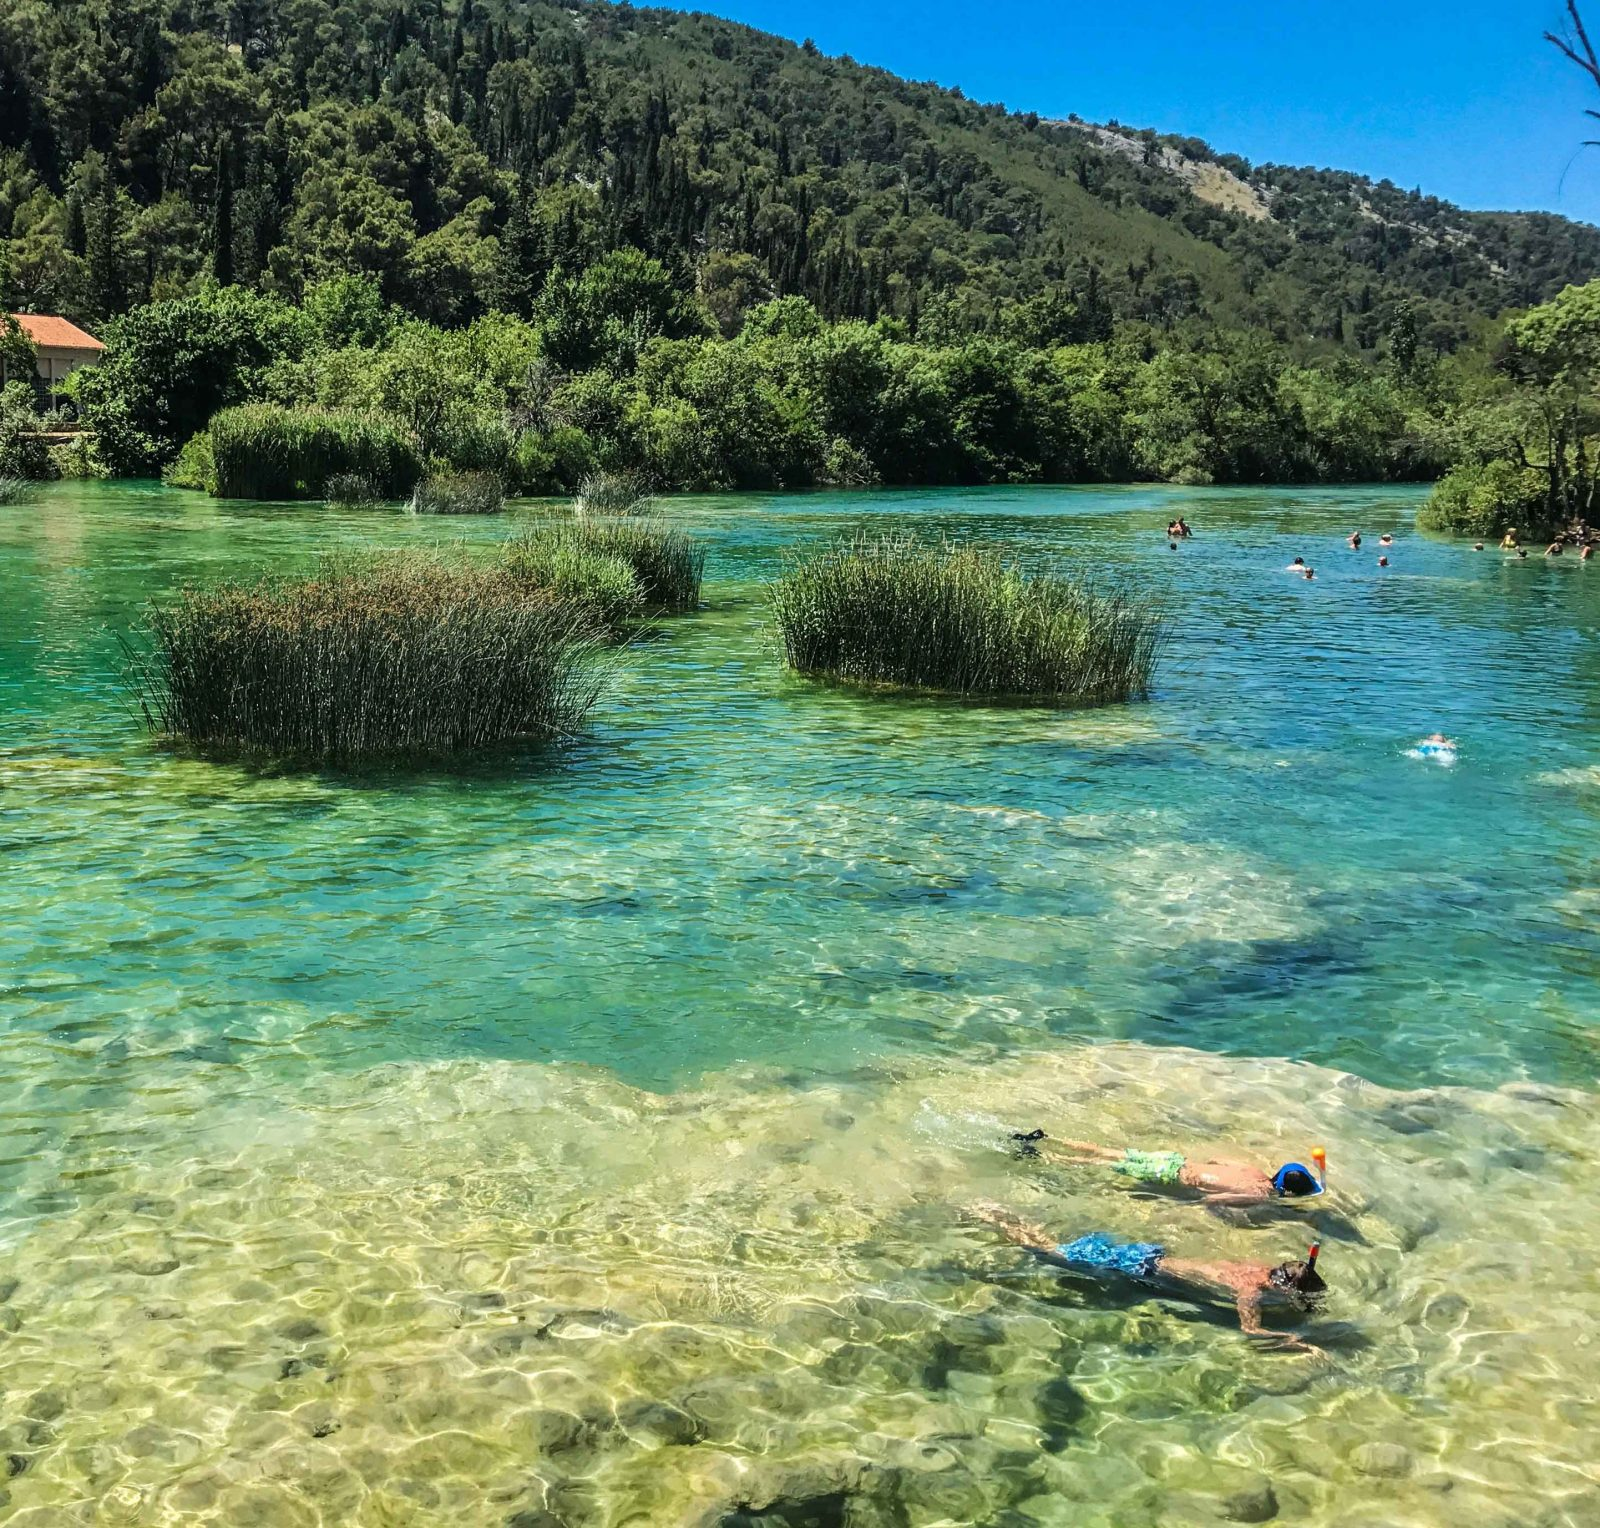 swimming and snorking in the krka waterfall